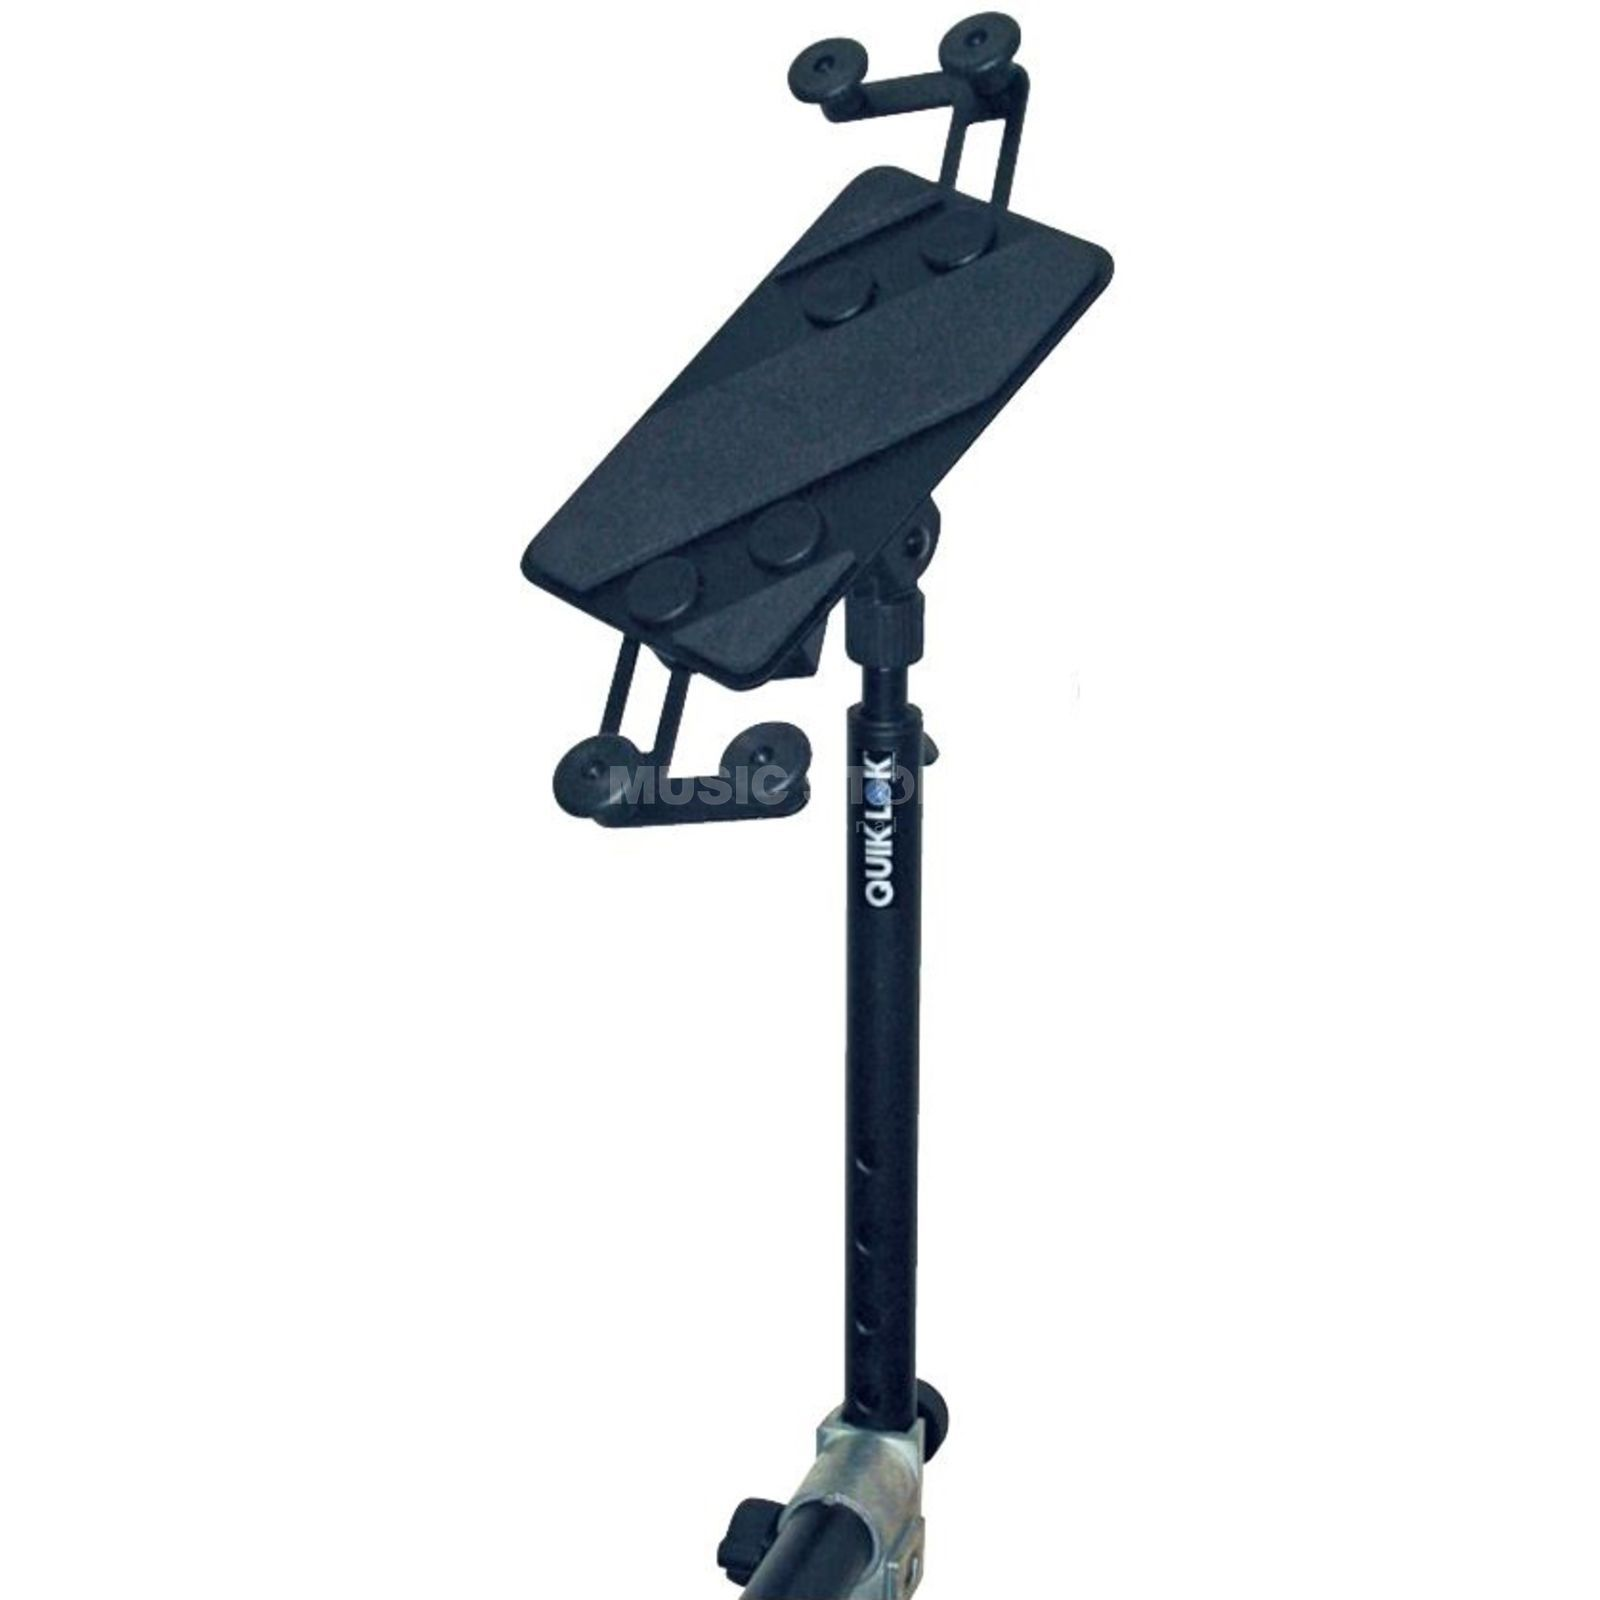 Quik Lok IPS-13 Tablet Holder for X-stands Produktbillede